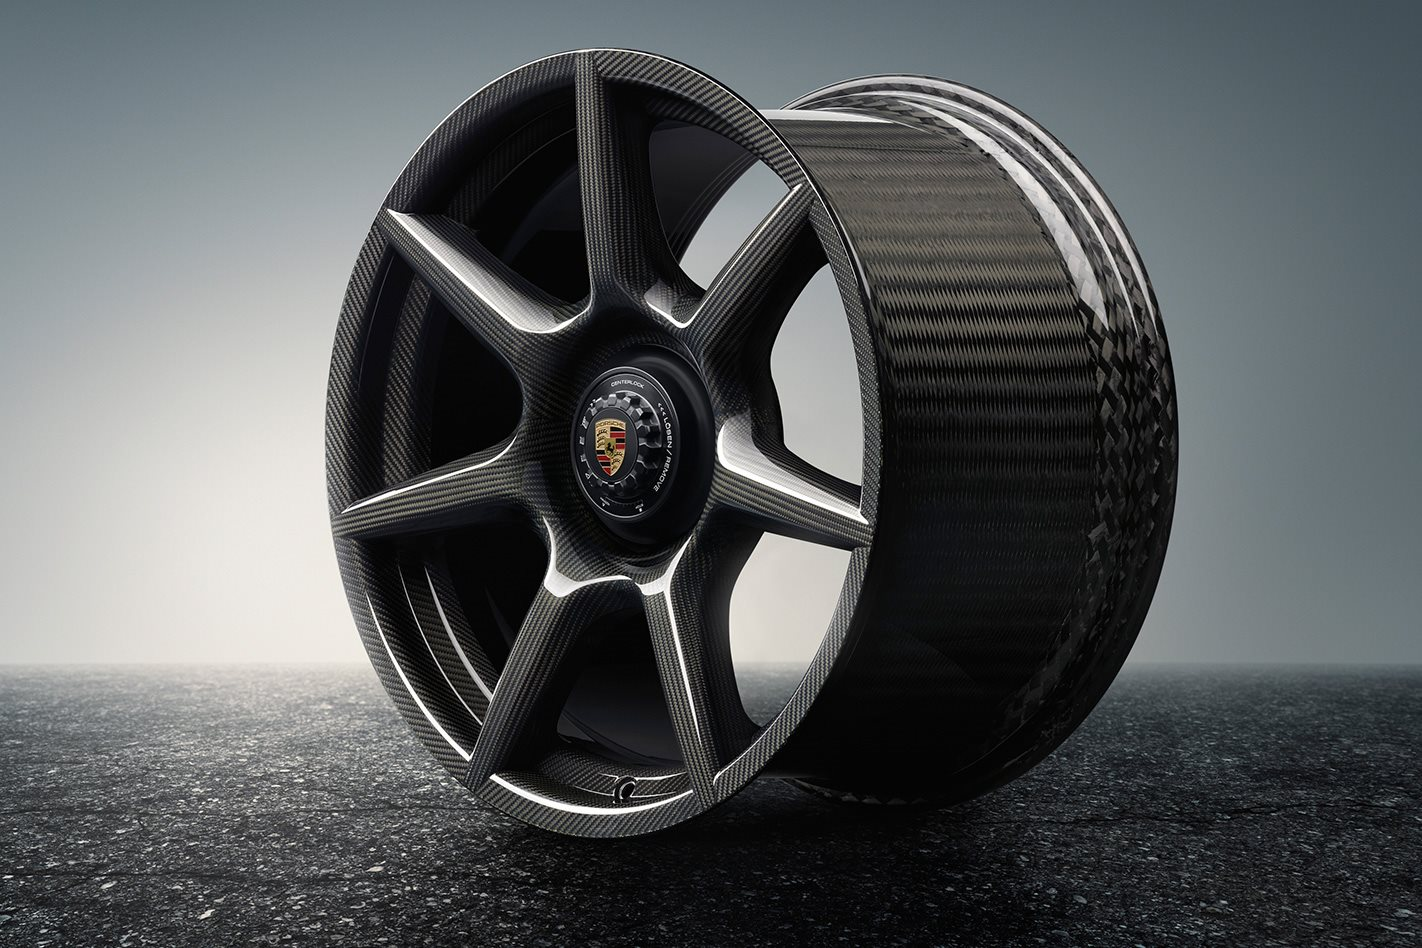 Porsche-carbon-fibre-wheel.jpg